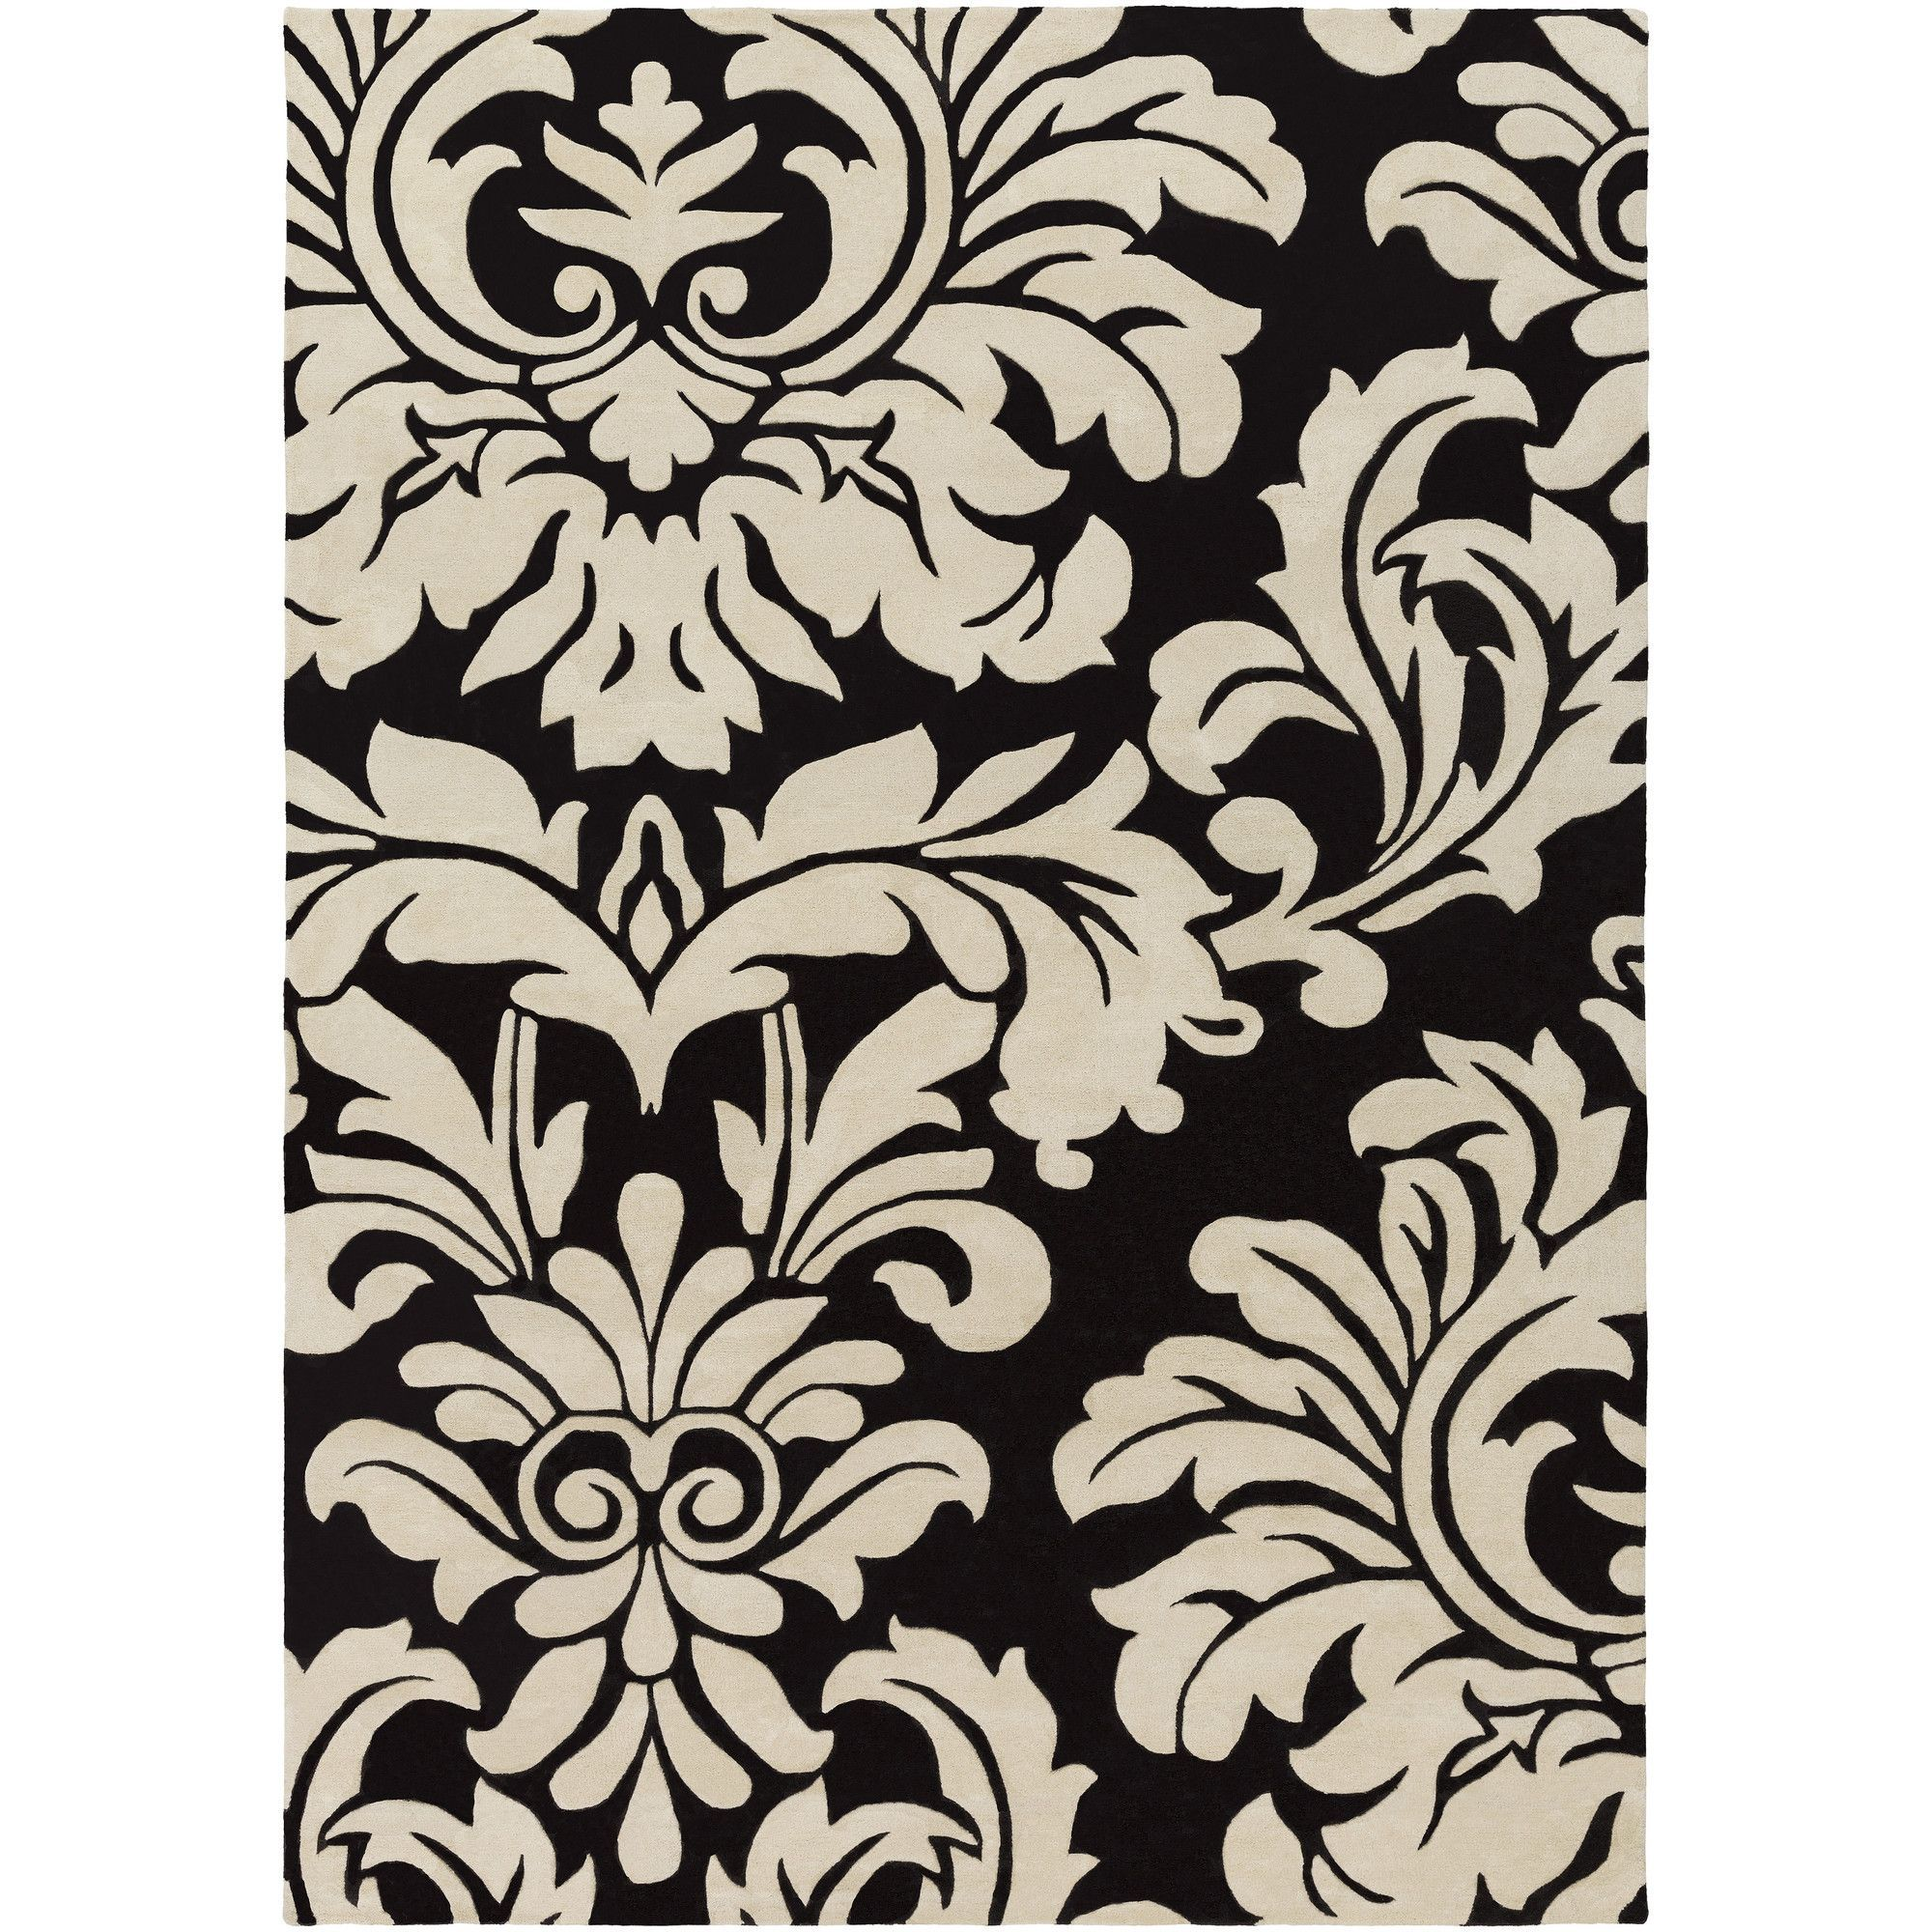 black and white rug patterns. Athena Hand-Tufted Black/White Area Rug Black And White Patterns